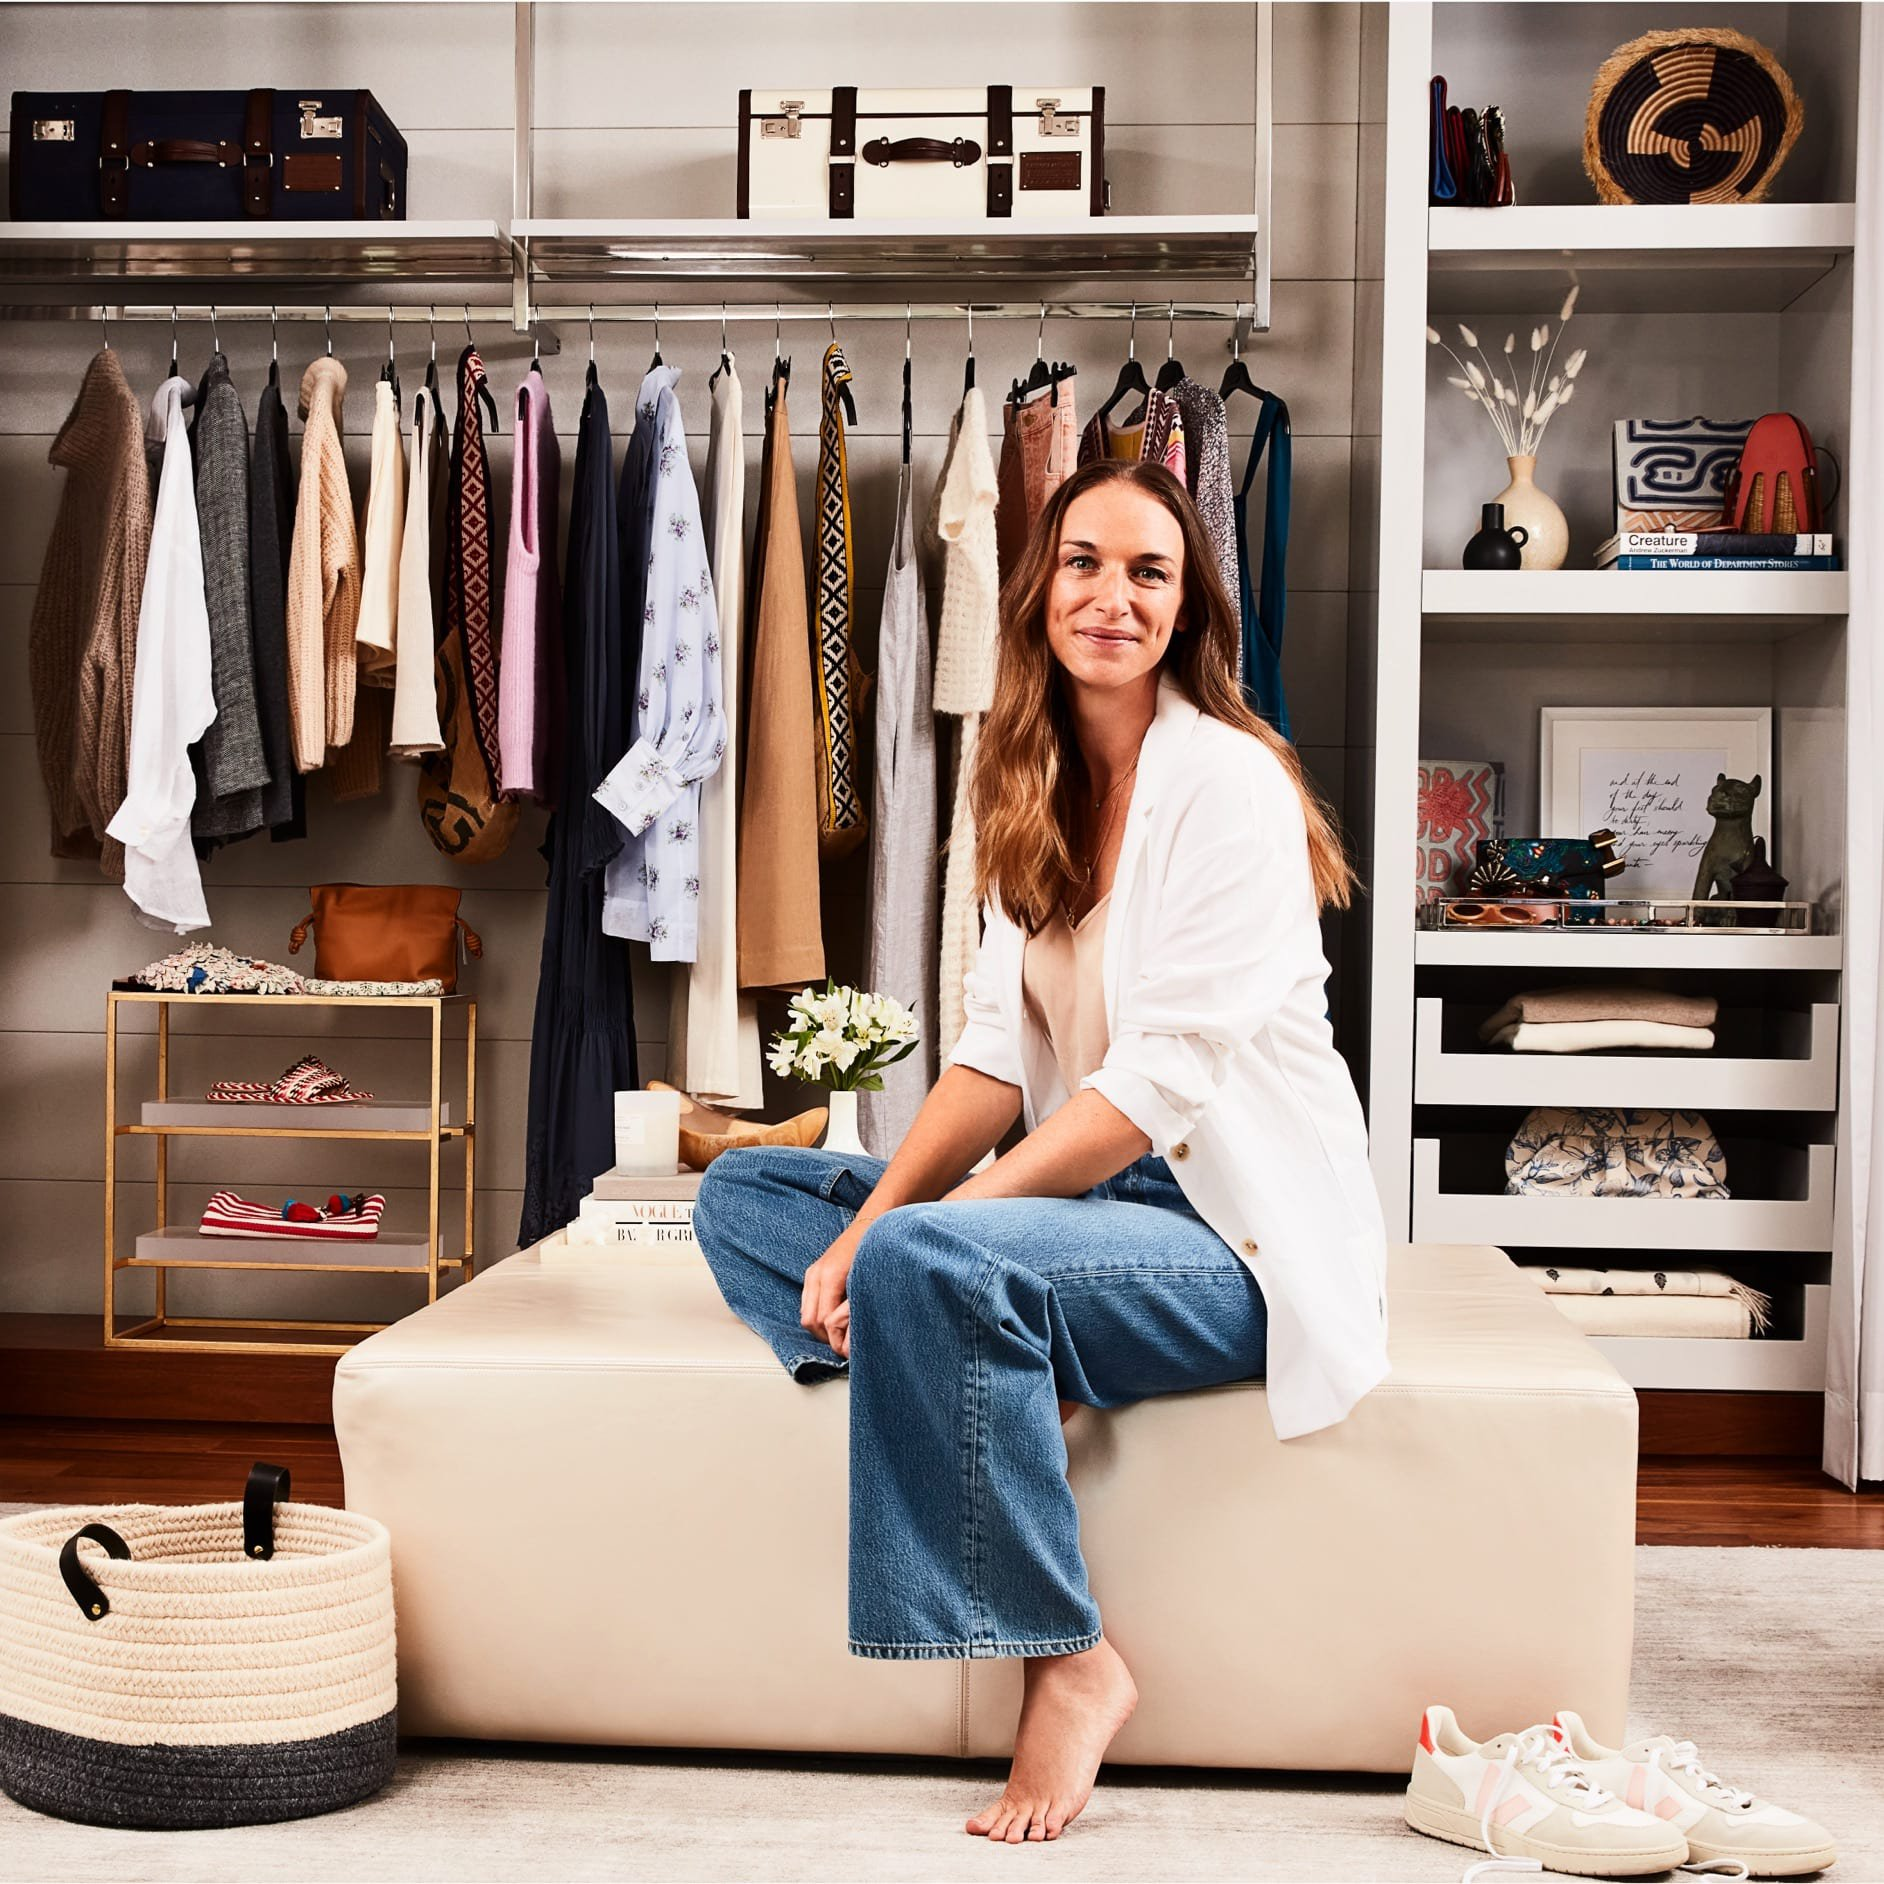 Alexandra Weston wears a white blazer and jeans while seated in front of a closet.